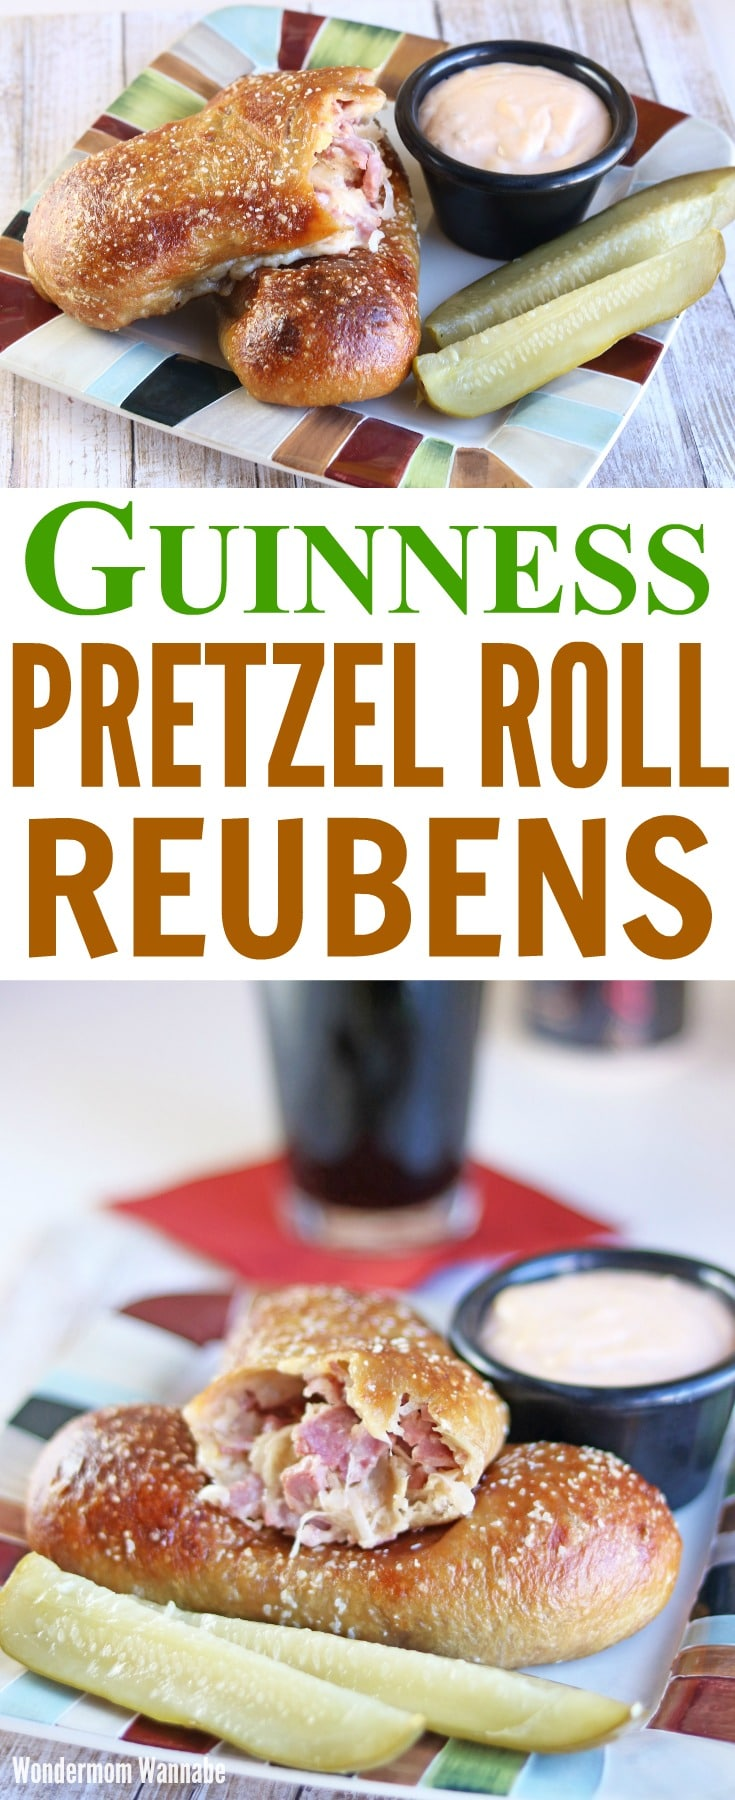 a collage of pretzel roll reuben sandwiches on a plate with pickles and sauce next to them with title text reading Guinness Pretzel Roll Reubens